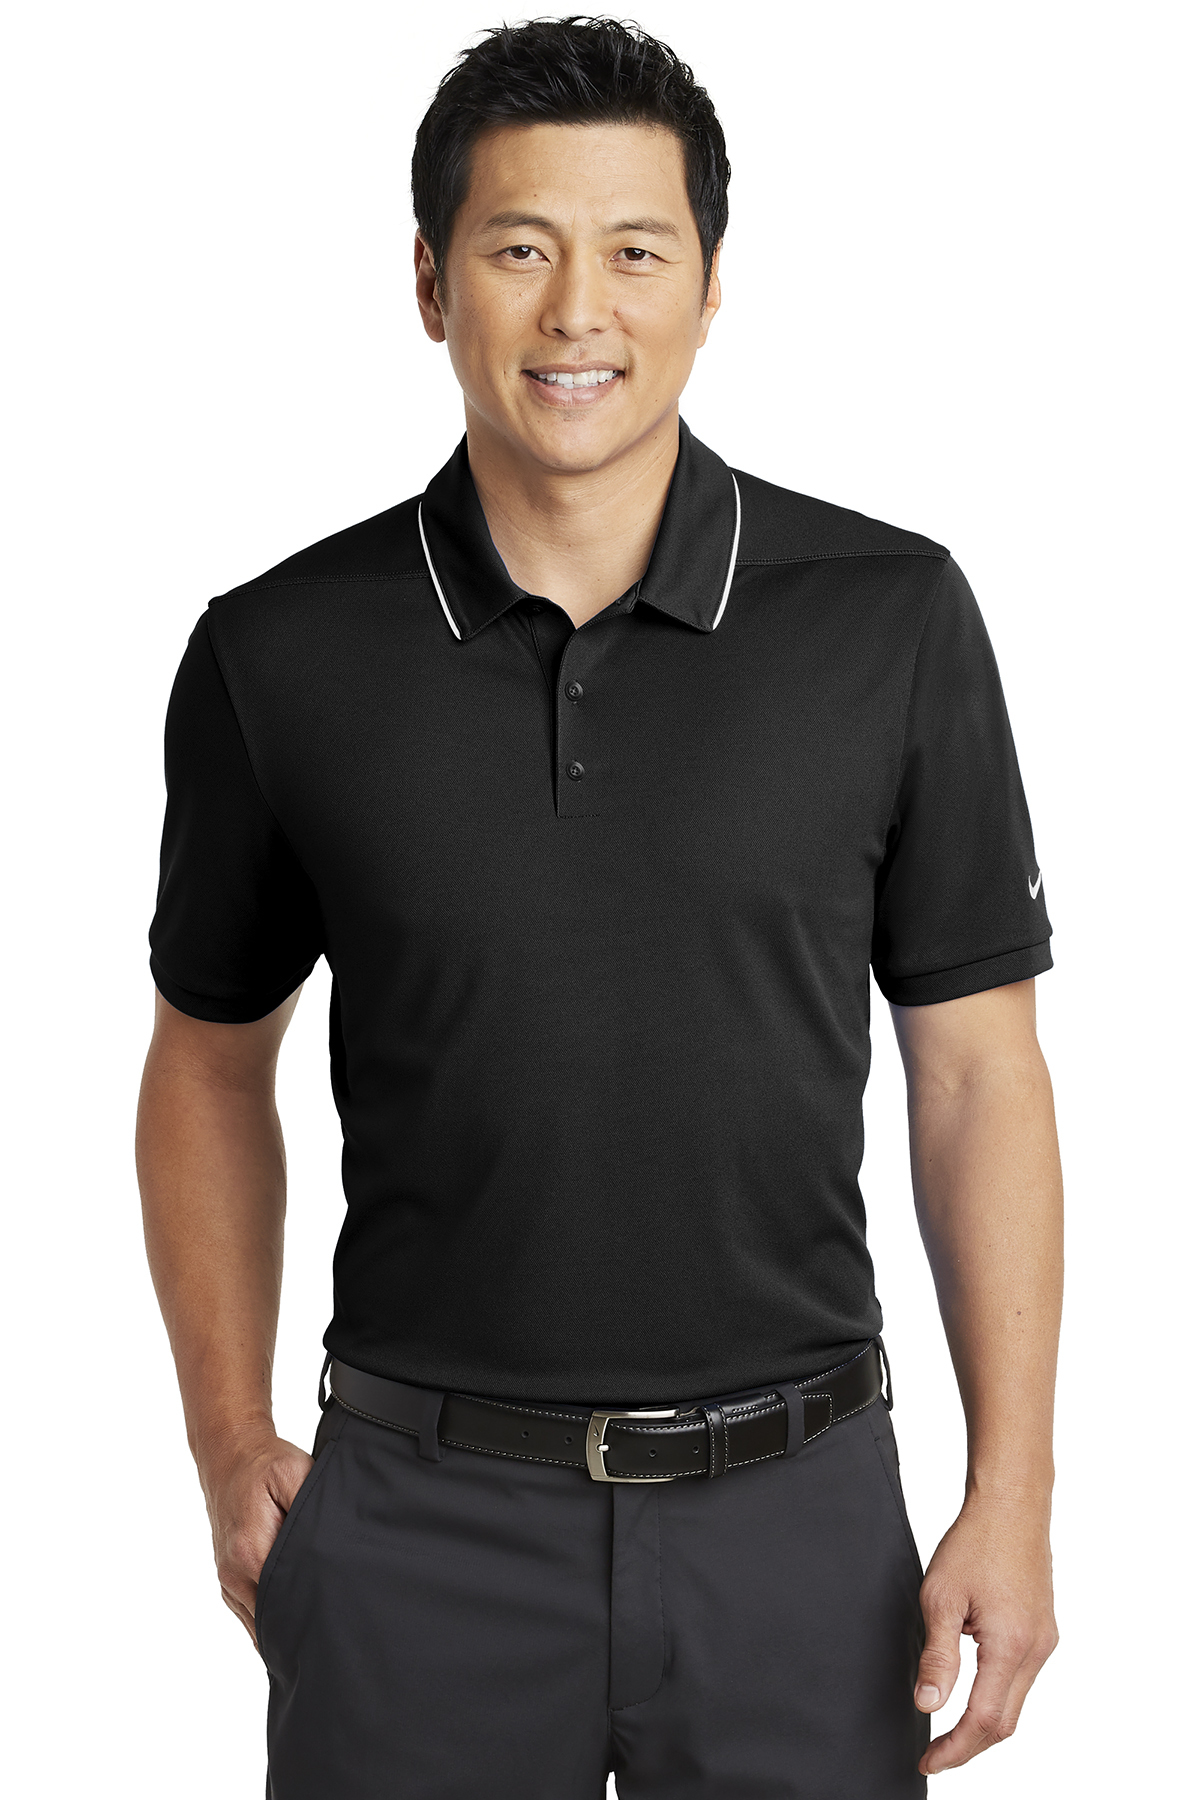 Nike Golf NKAA1849 - Nike Dri-FIT Edge Tipped Polo